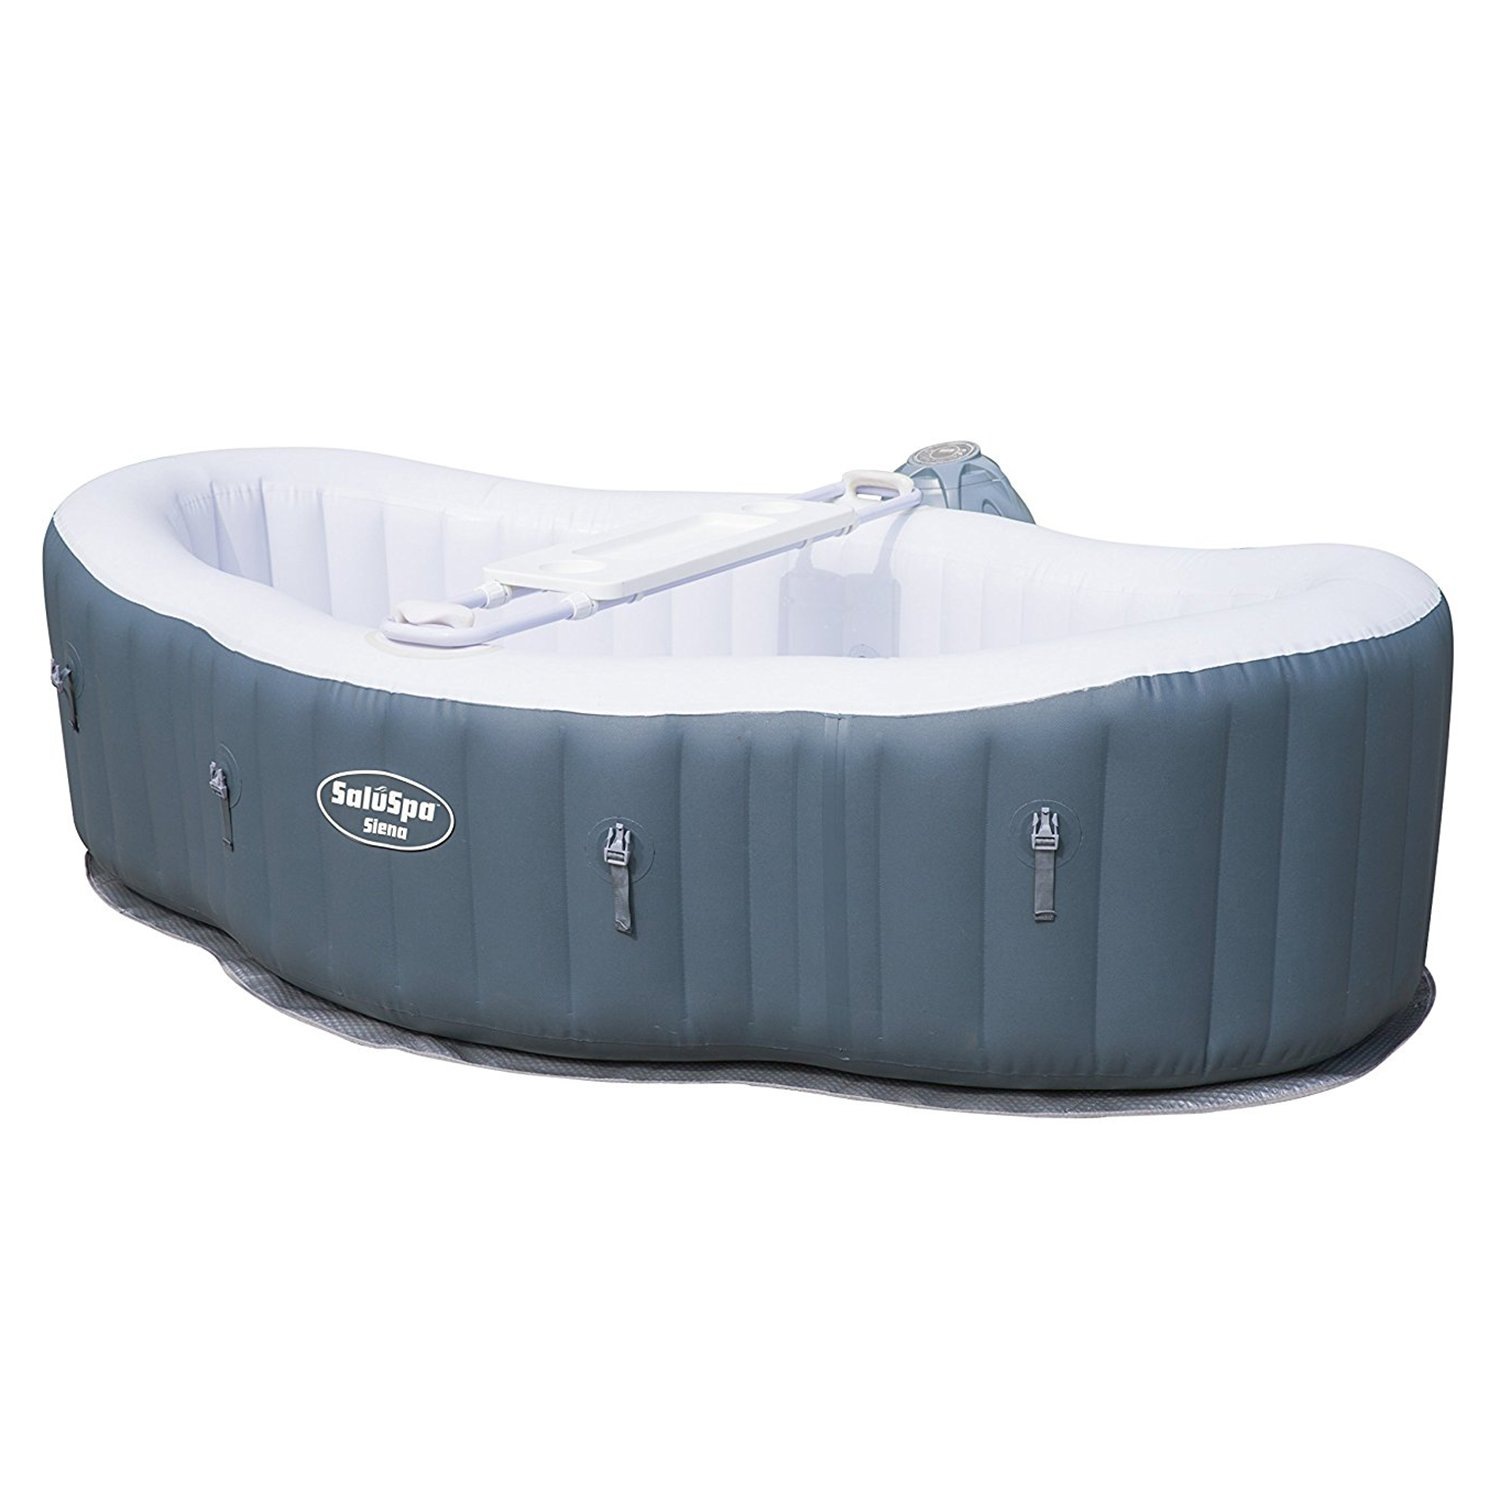 sale person tub walmart en hot tubs swift spa ip current canada for portable